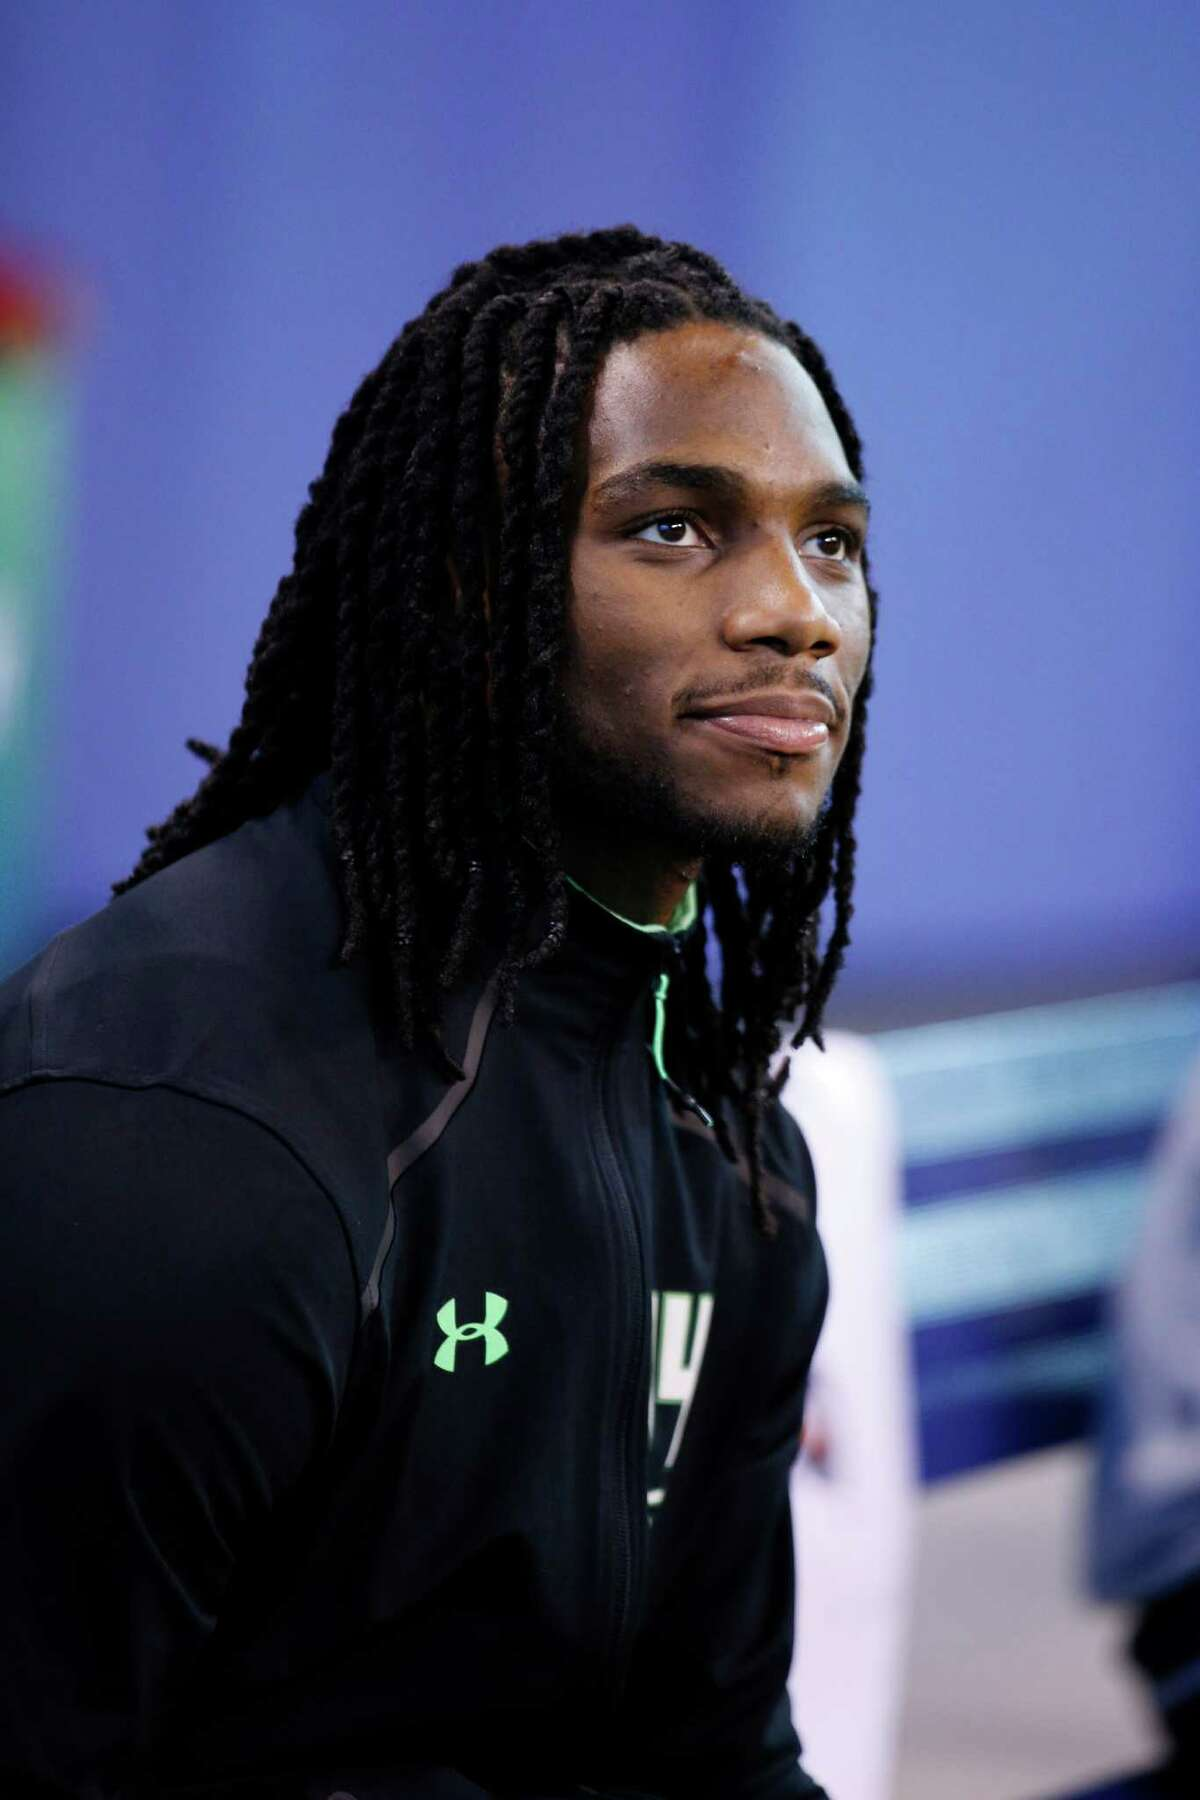 INDIANAPOLIS, IN - FEBRUARY 28: Injured linebacker Jaylon Smith of Notre Dame looks on during the 2016 NFL Scouting Combine at Lucas Oil Stadium on February 28, 2016 in Indianapolis, Indiana. (Photo by Joe Robbins/Getty Images)